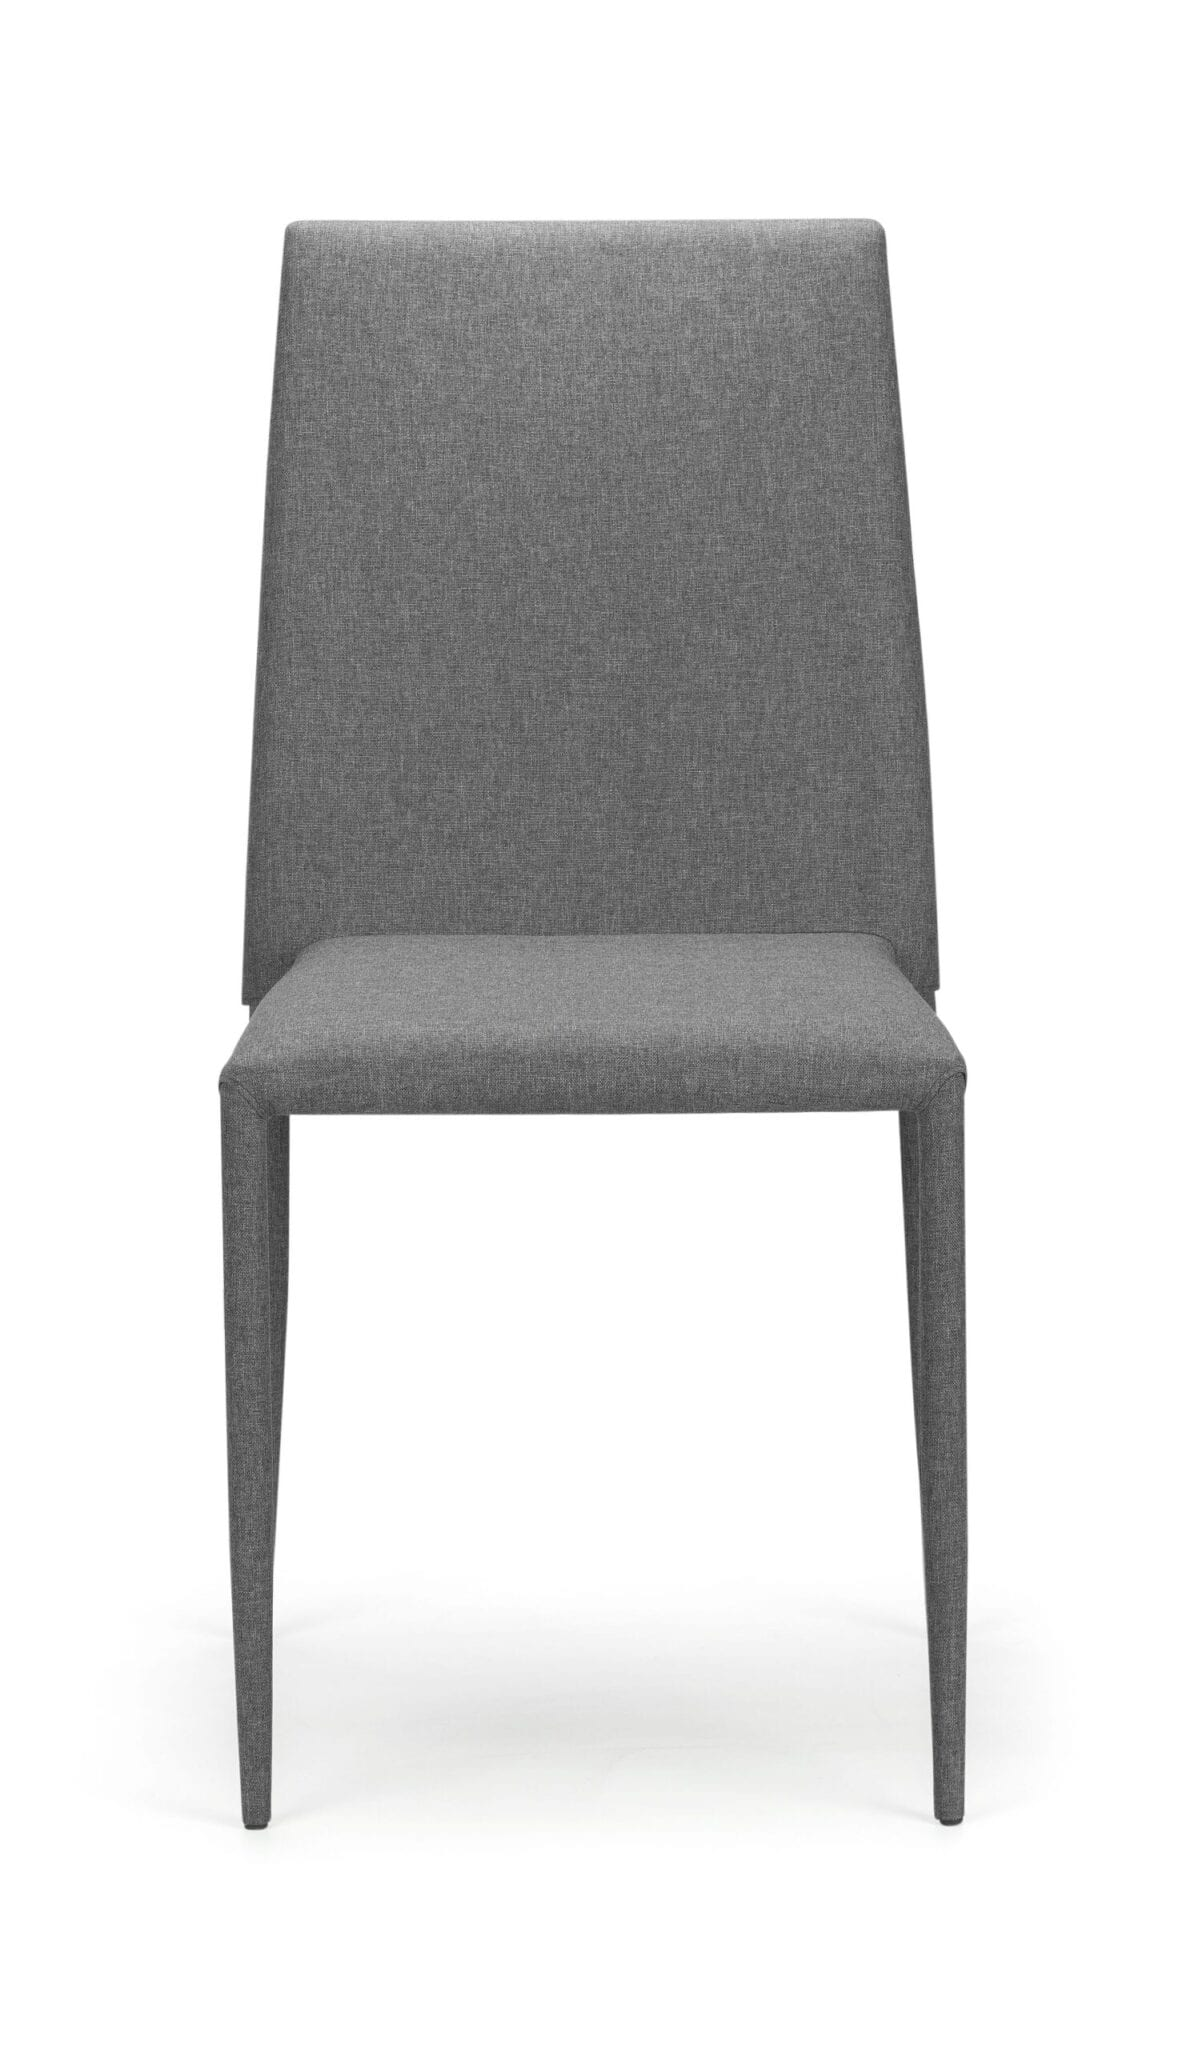 Wizz Stacking Chair Grey